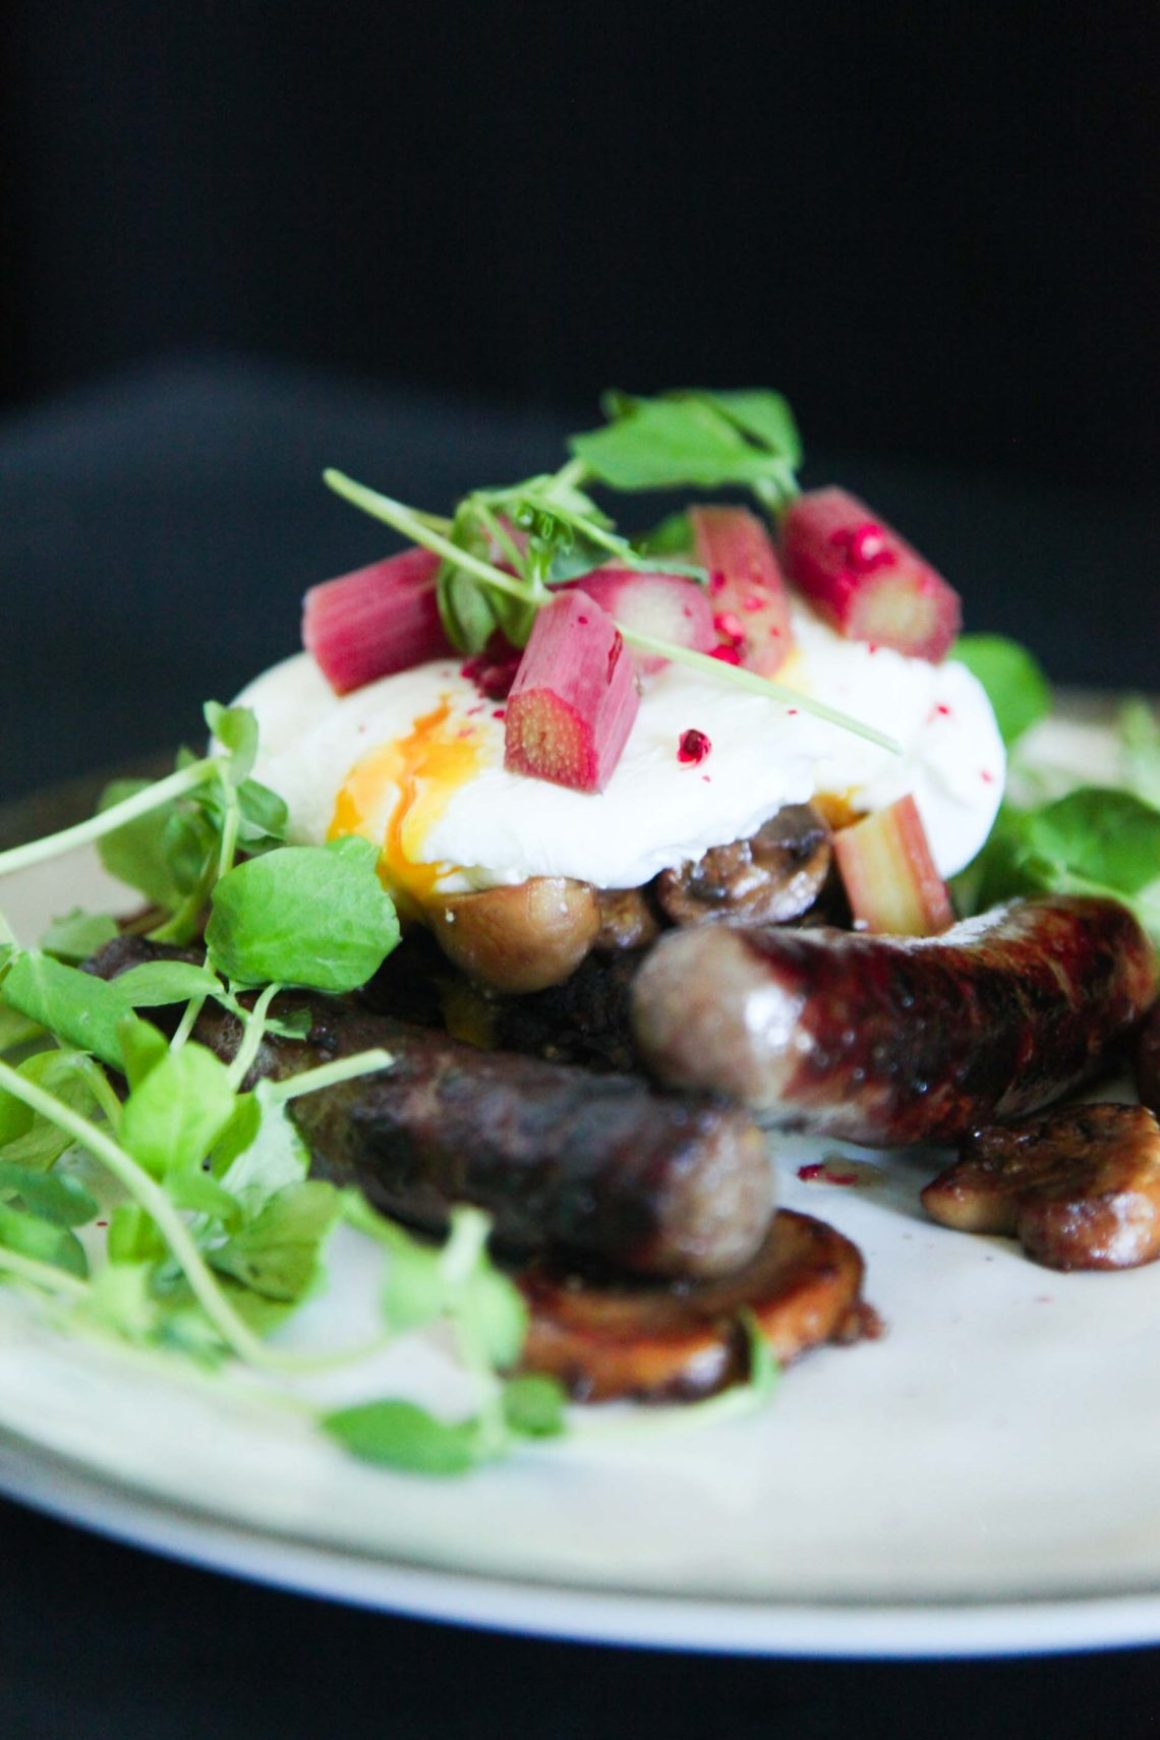 Challenging traditions: a reimagined English Breakfast | Berries and Spice